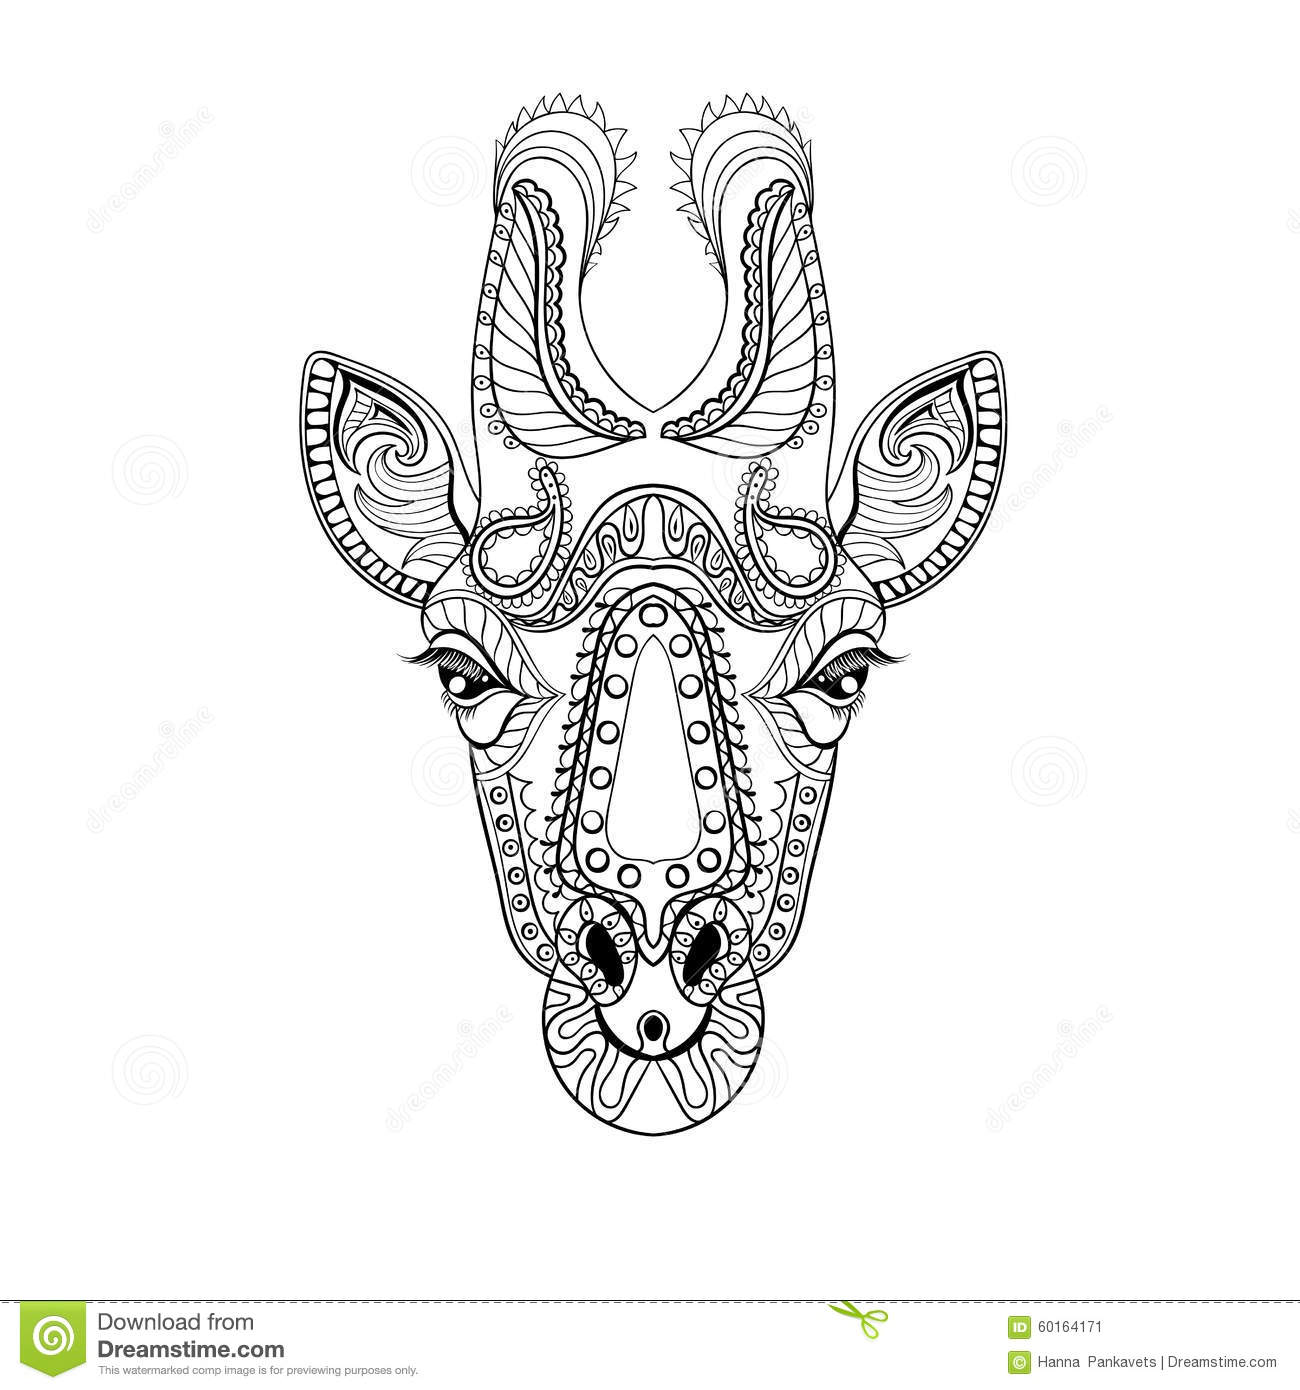 Anti stress colouring pages for adults - Zentangle Giraffe Head Totem For Adult Anti Stress Coloring Page Stock Image